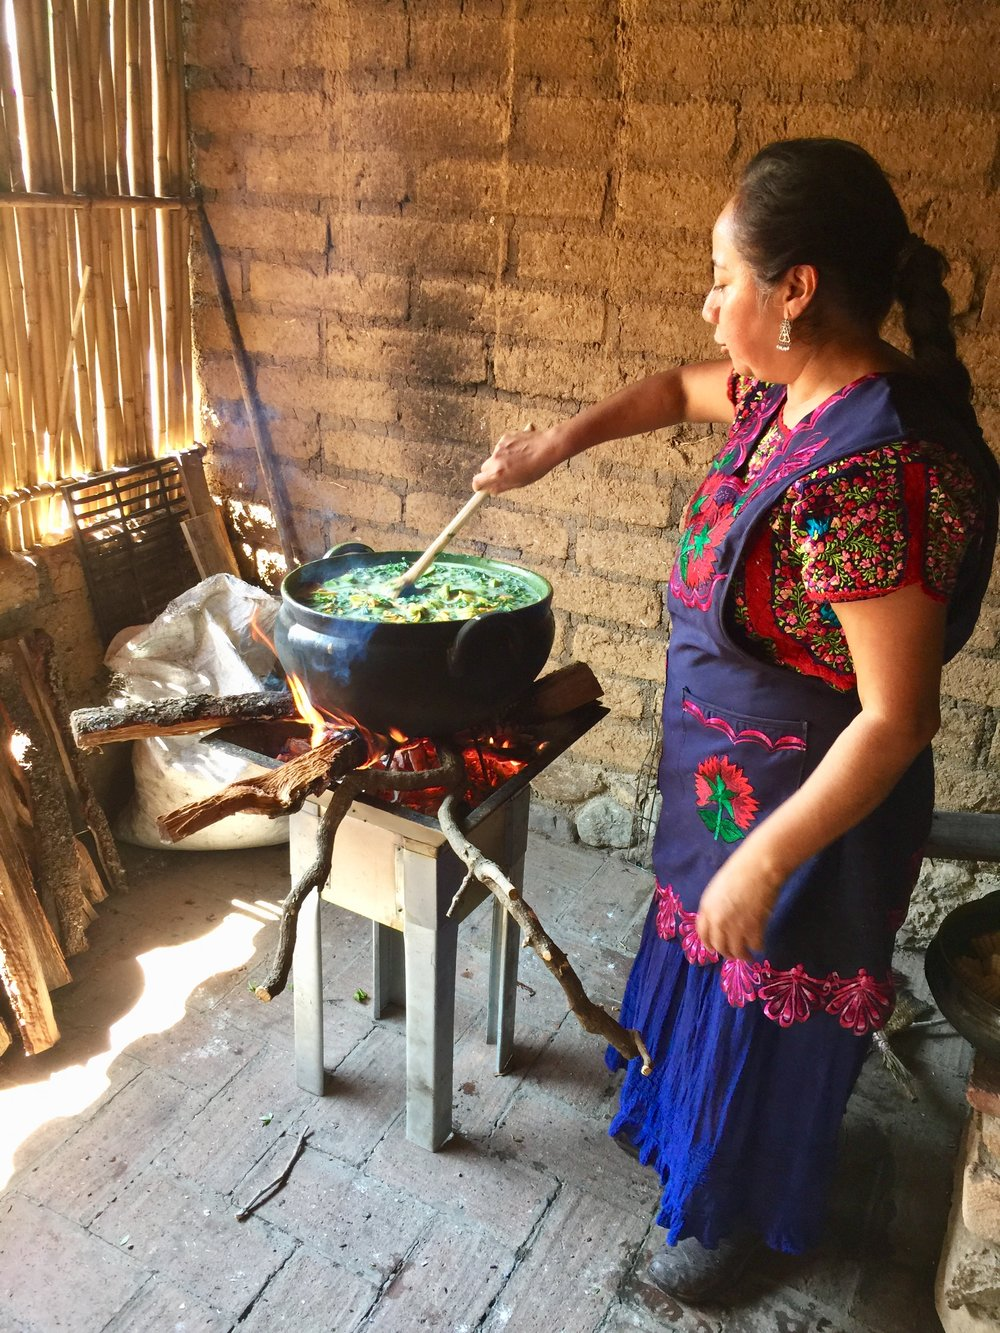 Carina hosting a cooking demo at Tierra Antigua